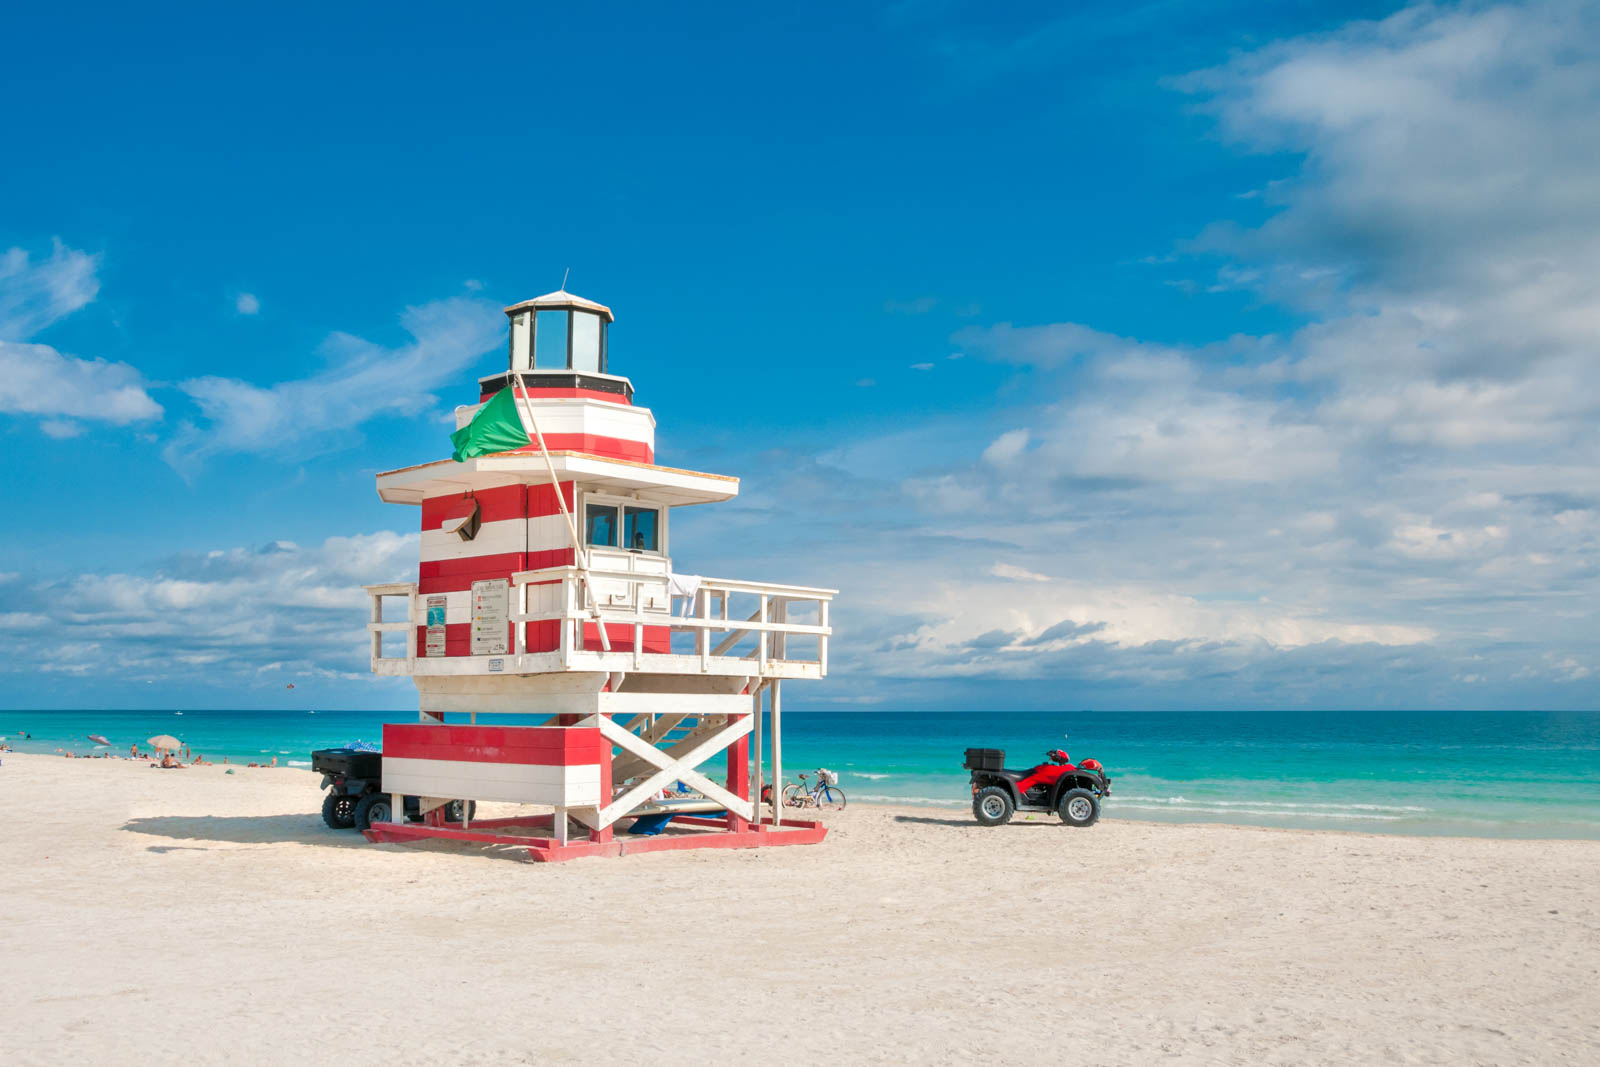 South Beach in Miami is among the best places to visit in Florida. There are other cool places to visit in Florida, but South Beach is one of the most popular.